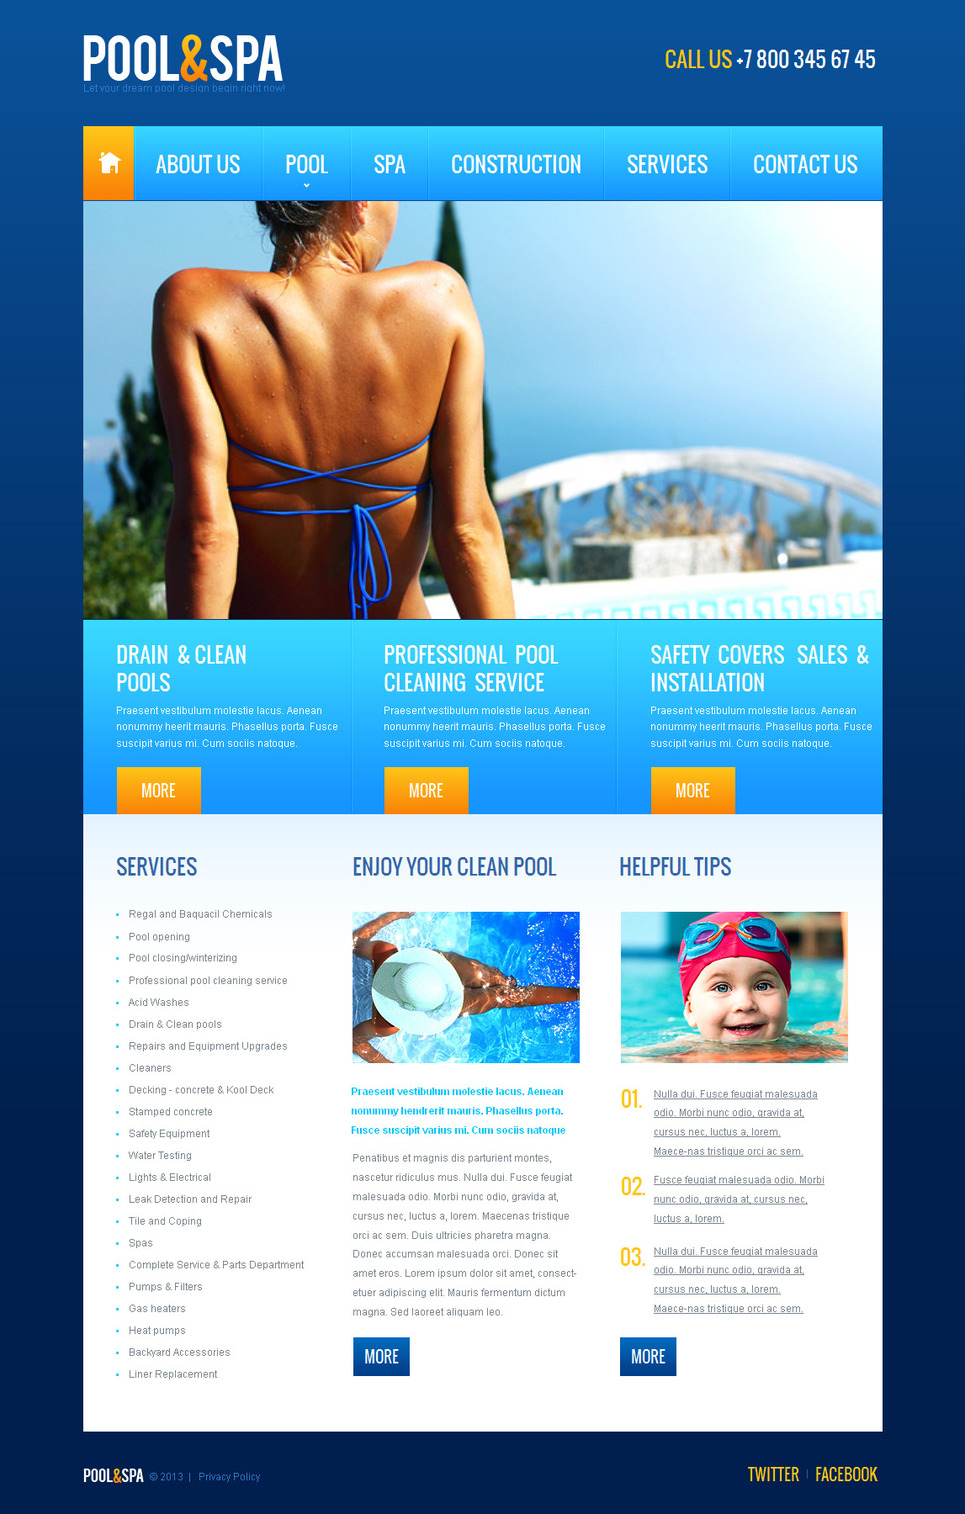 Pool Maintenance Website Template Designed in Blue Tones - image